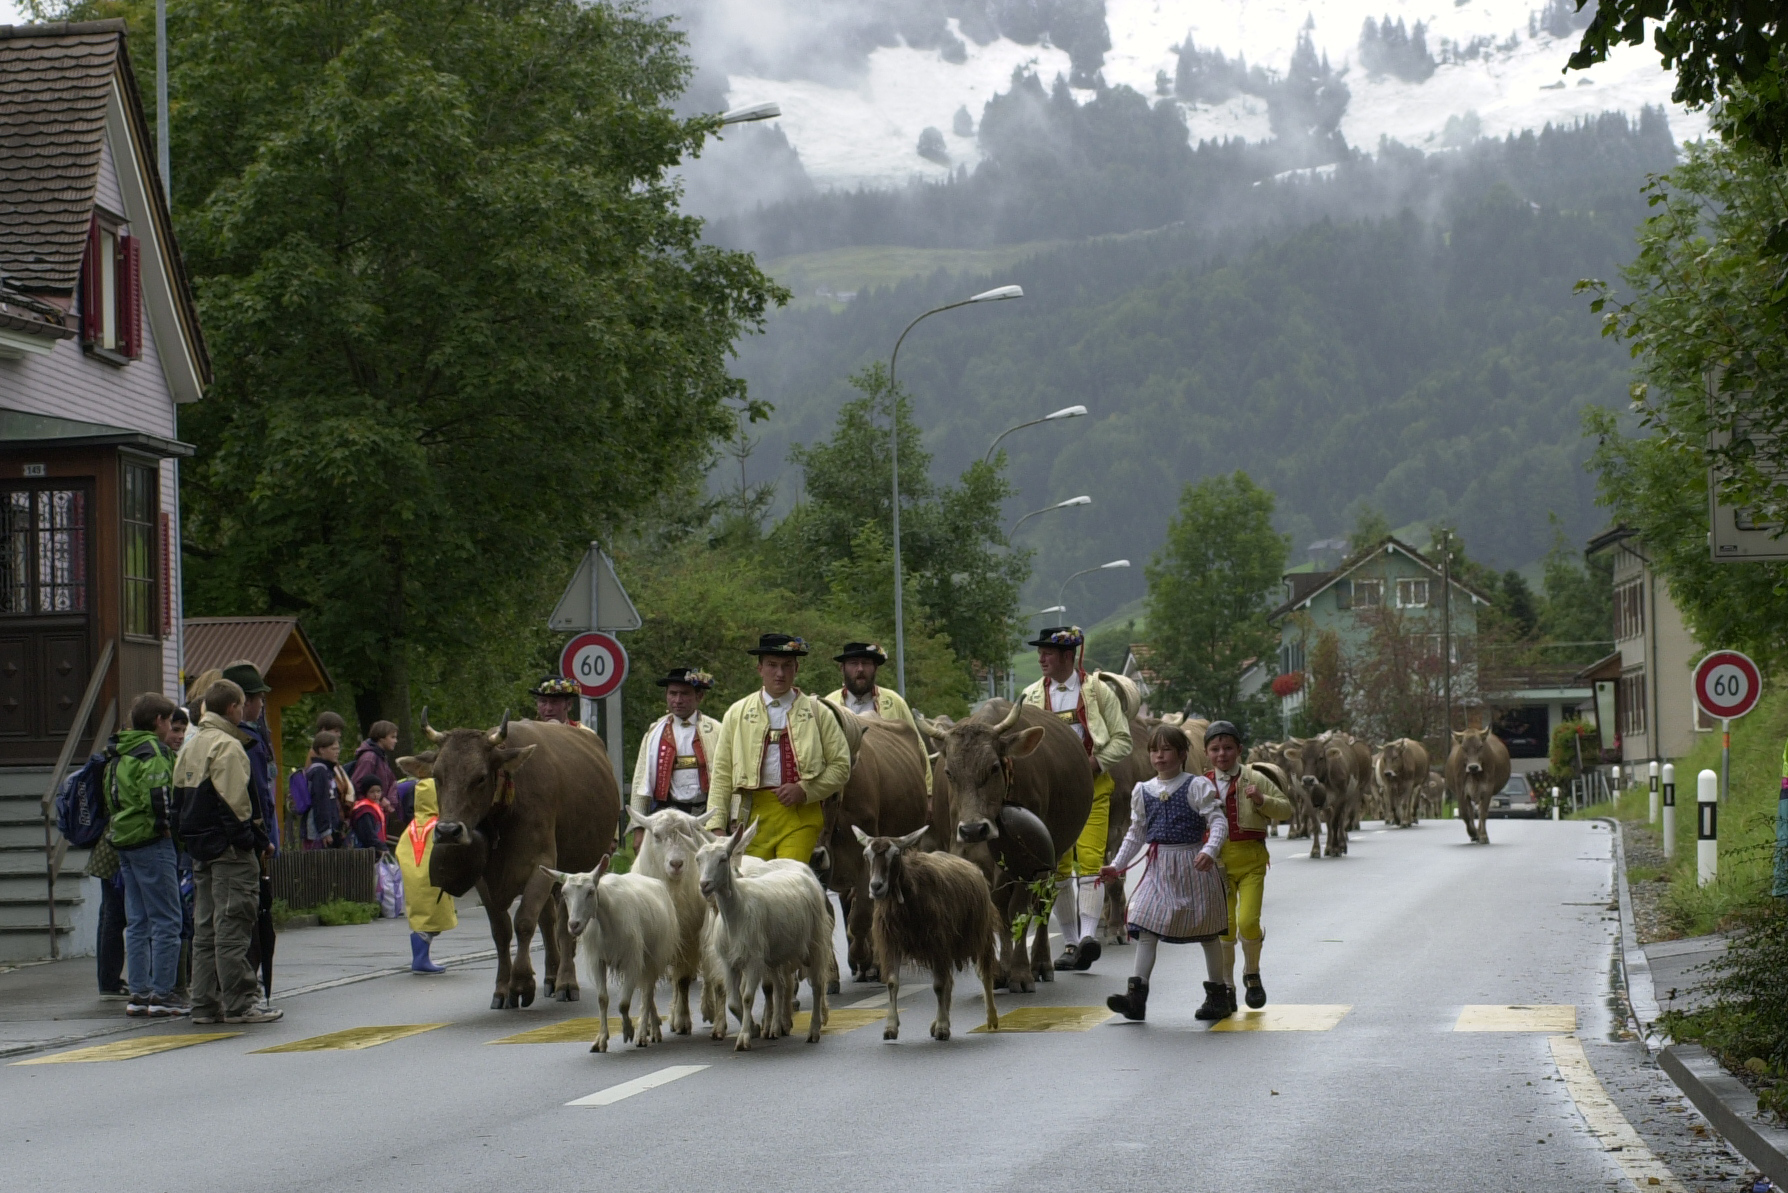 Descent, Urnäsch: The procession leaders approaching the village of Urnäsch © Hans Hürlemann, Urnäsch, 2001